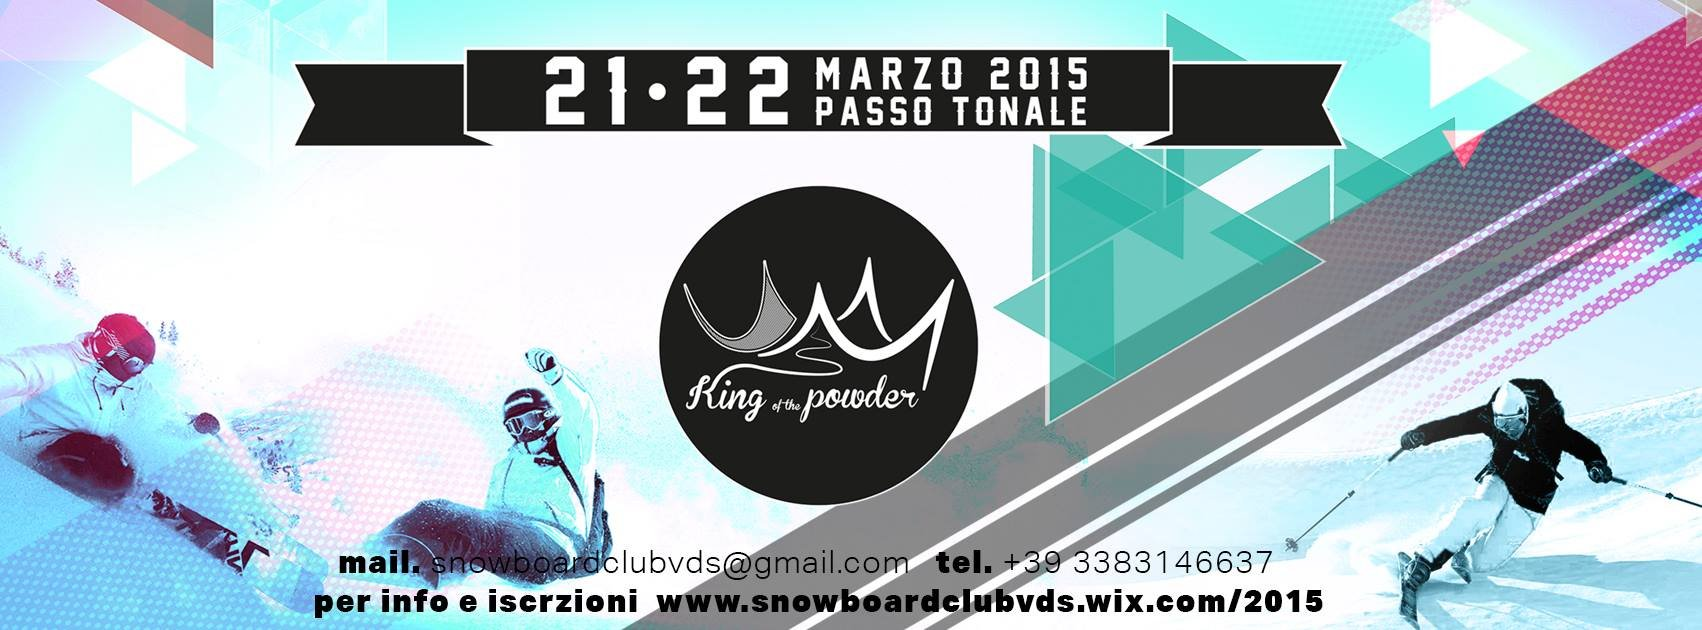 King of the Powder - Passo Tonale